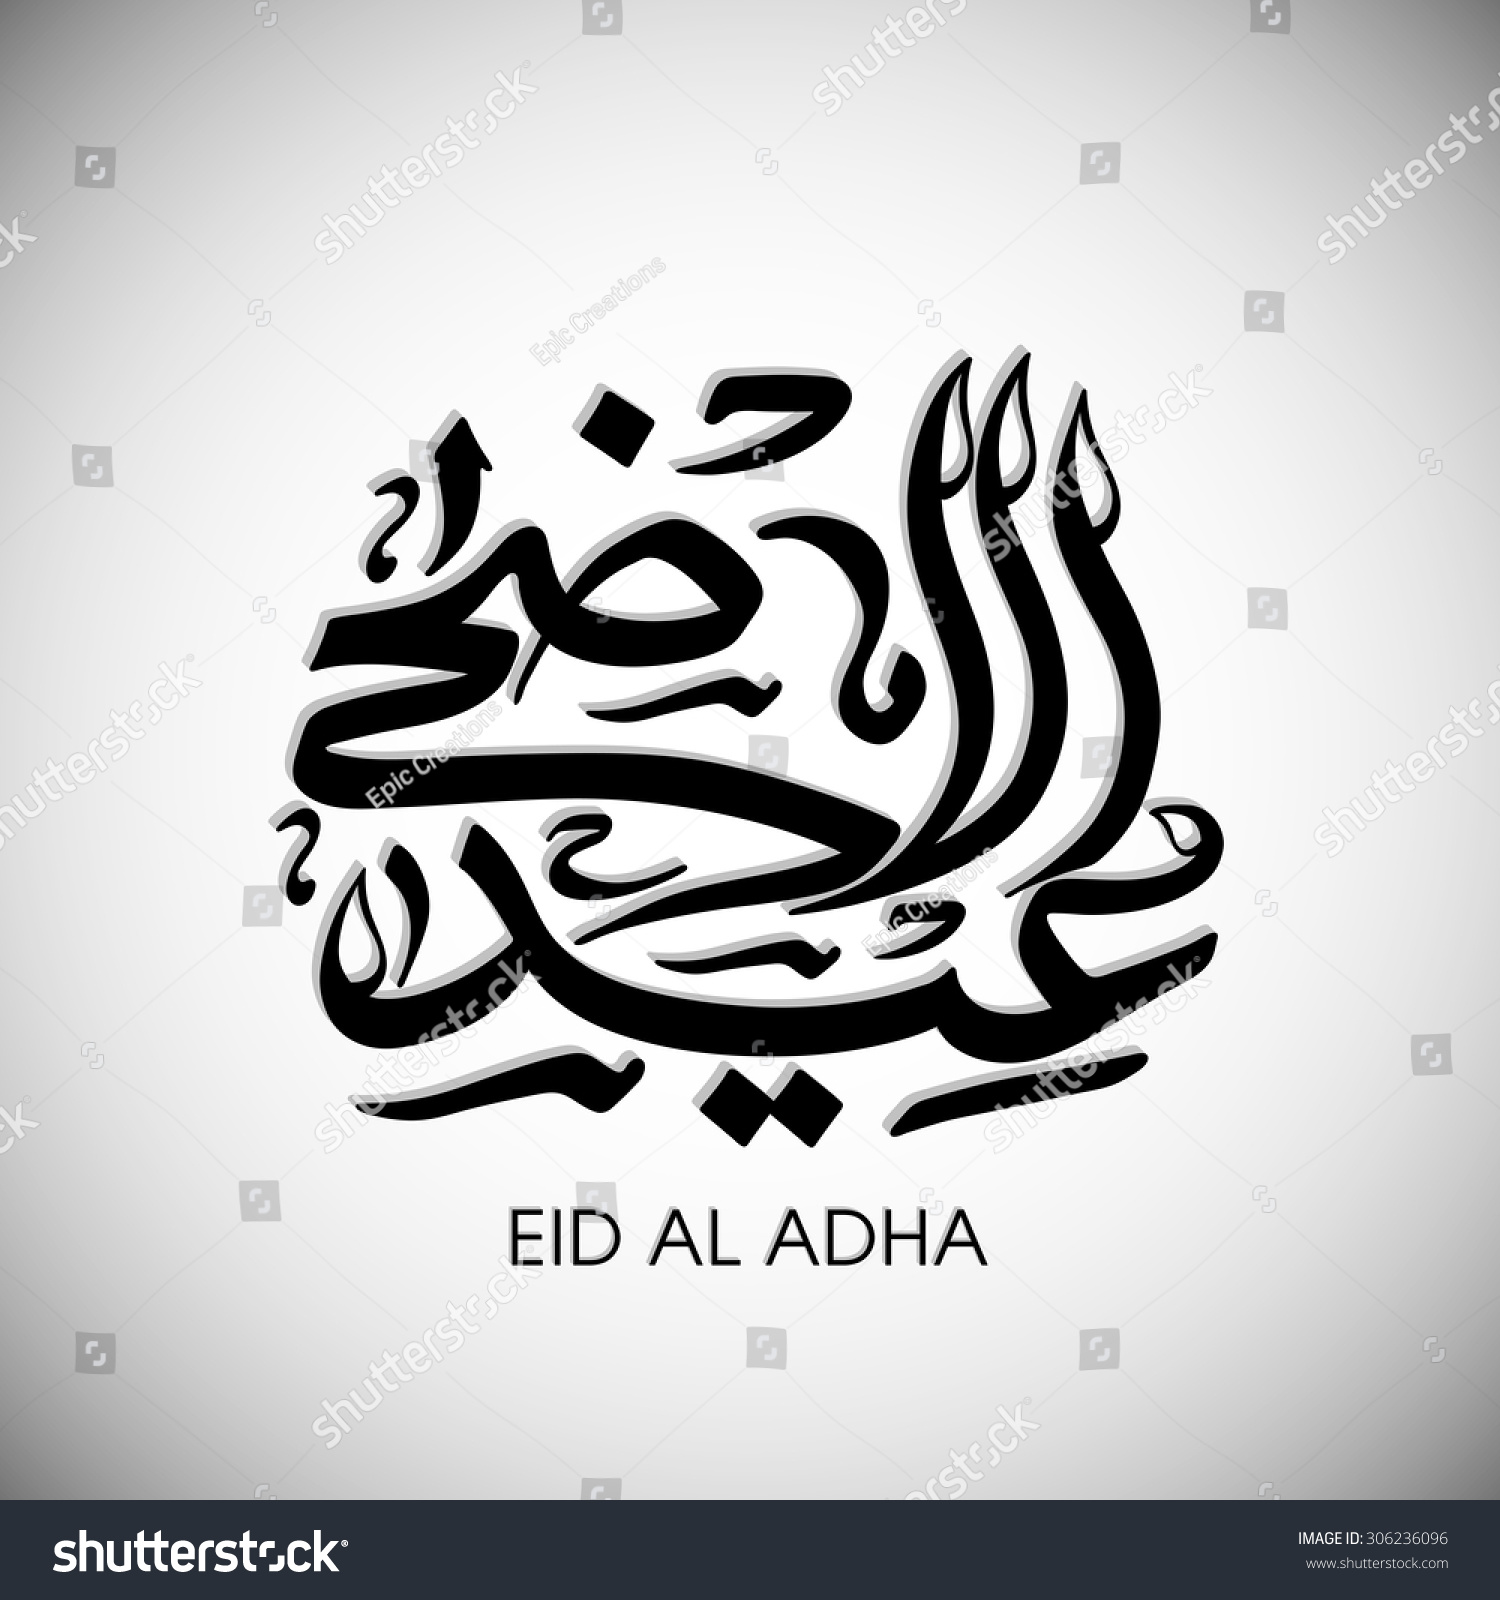 Calligraphy arabic text eid al adha stock vector